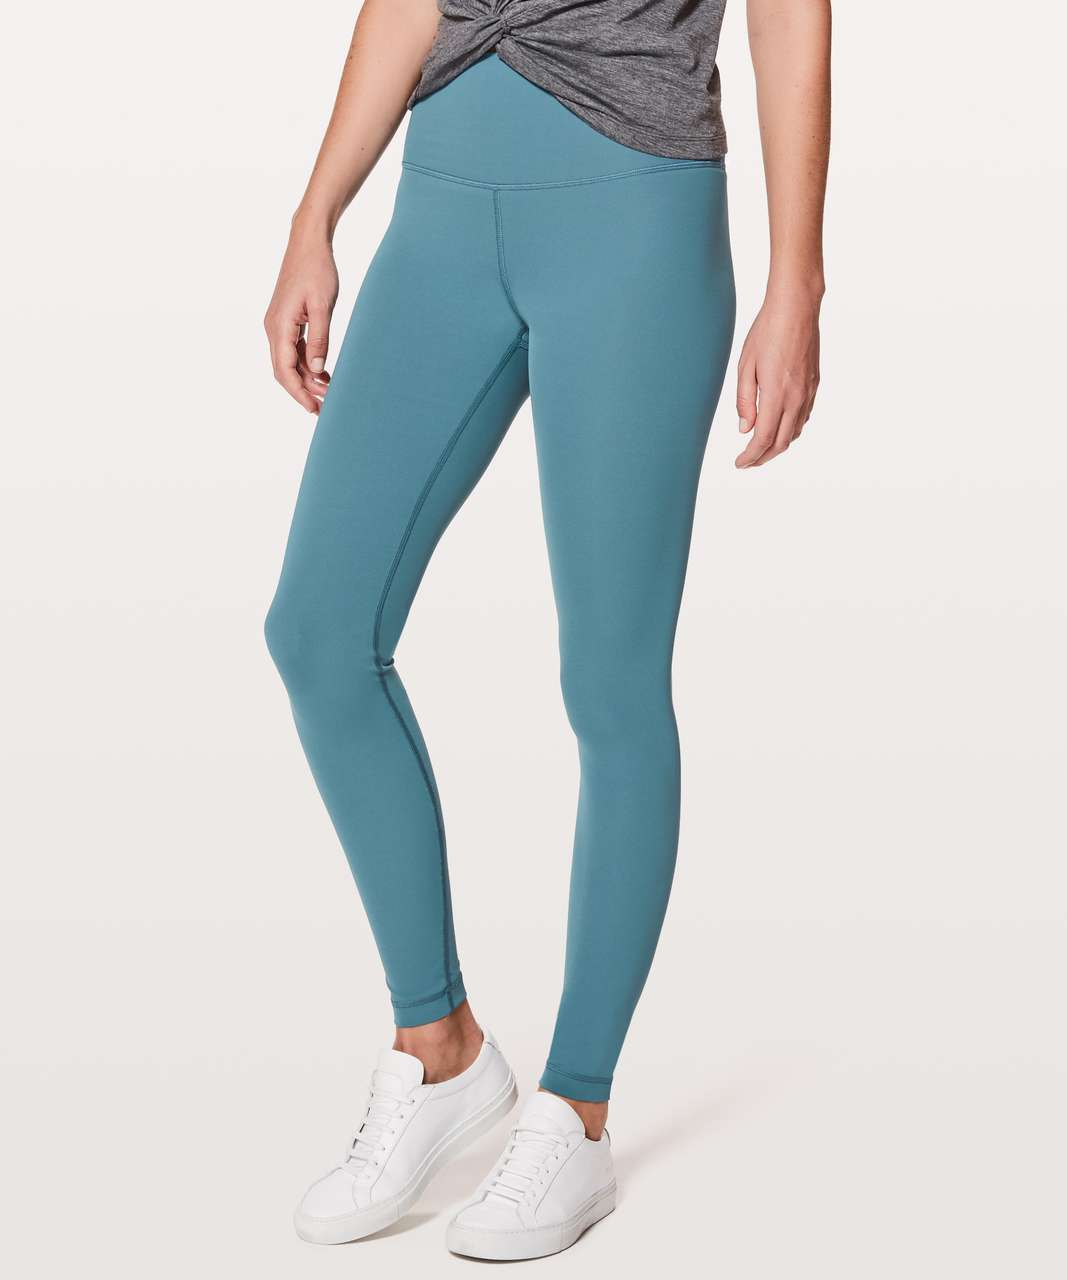 "Lululemon Wunder Under Hi-Rise Tight 28"" - Persian Blue"